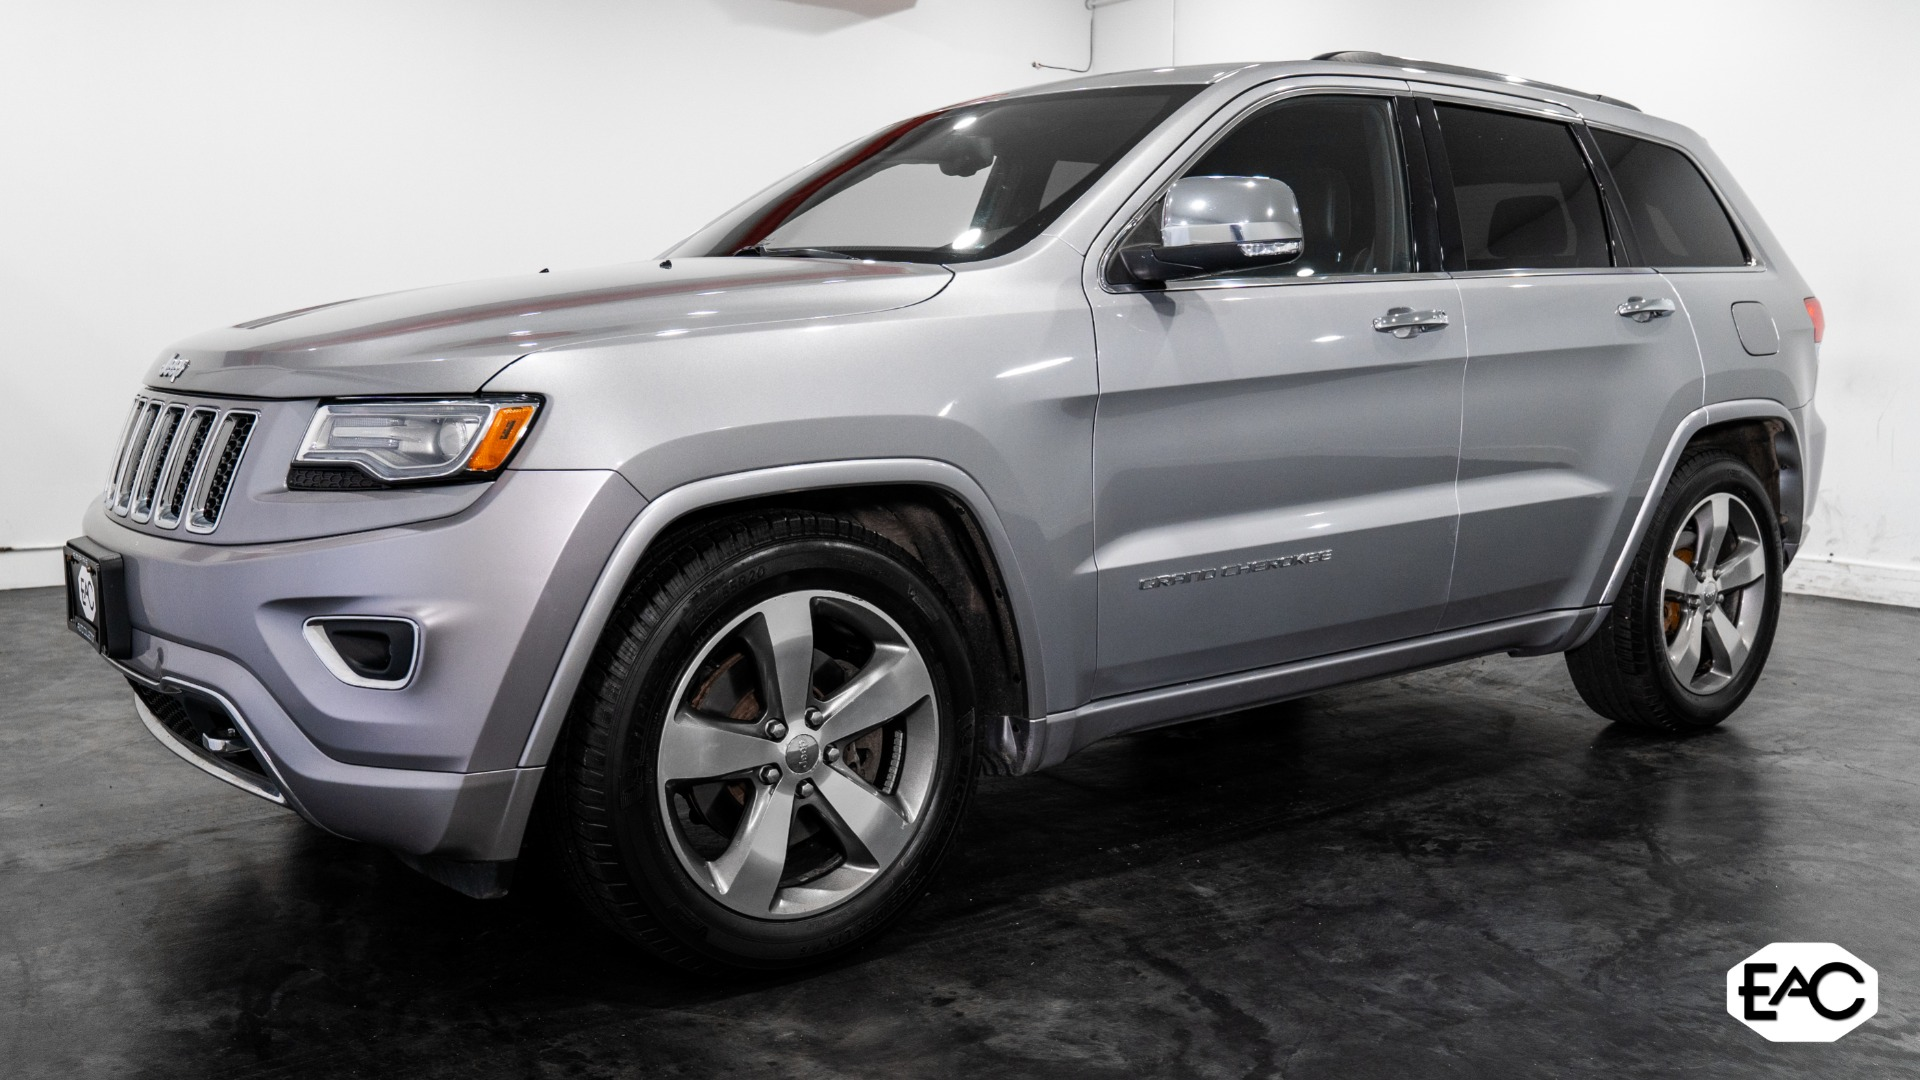 Used 2014 Jeep Grand Cherokee Overland for sale Sold at Empire Auto Collection in Warren MI 48091 1